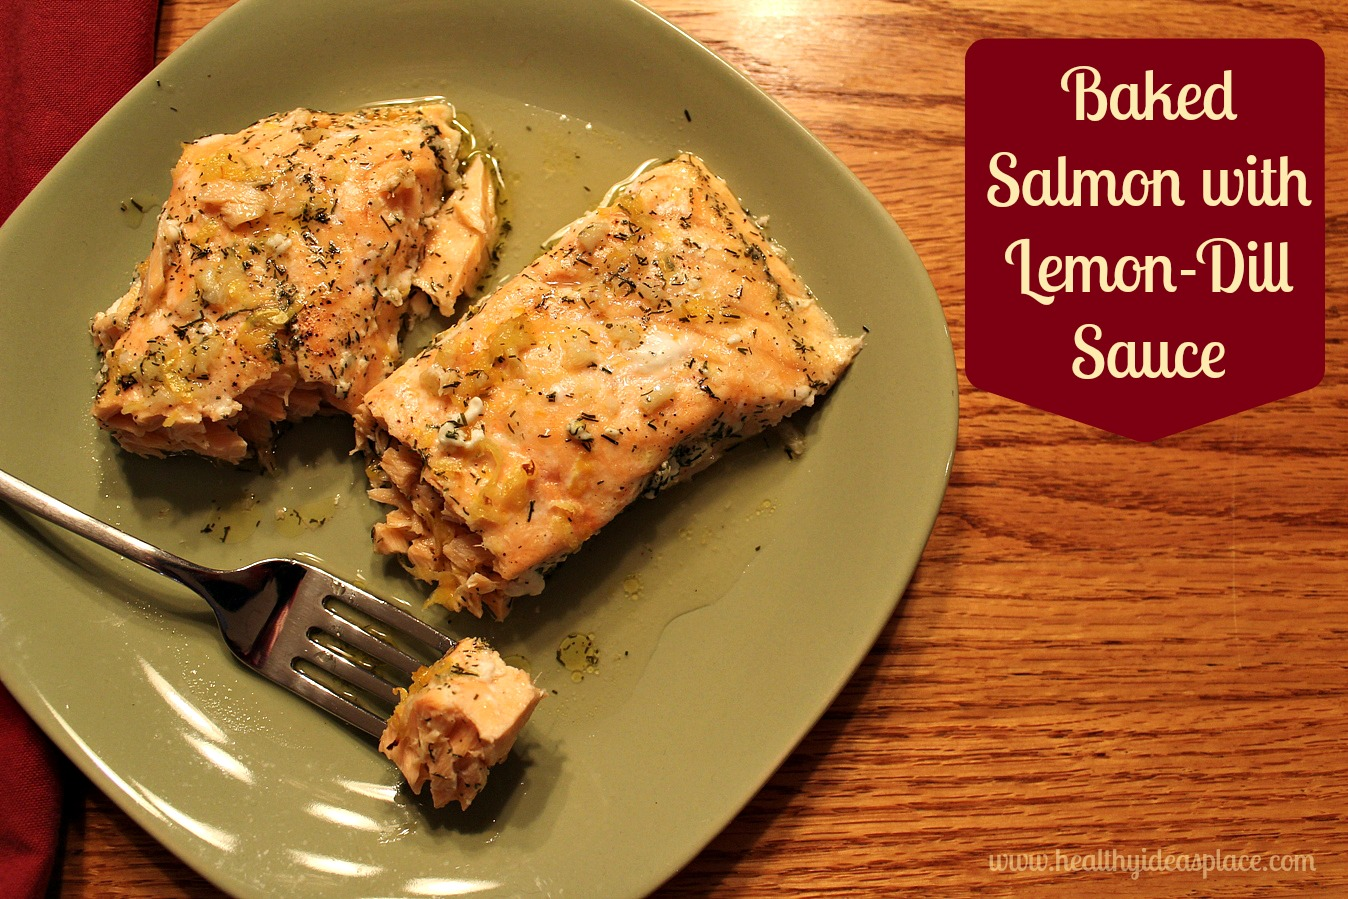 Baked Salmon with Lemon-Dill Sauce - Healthy Ideas Place